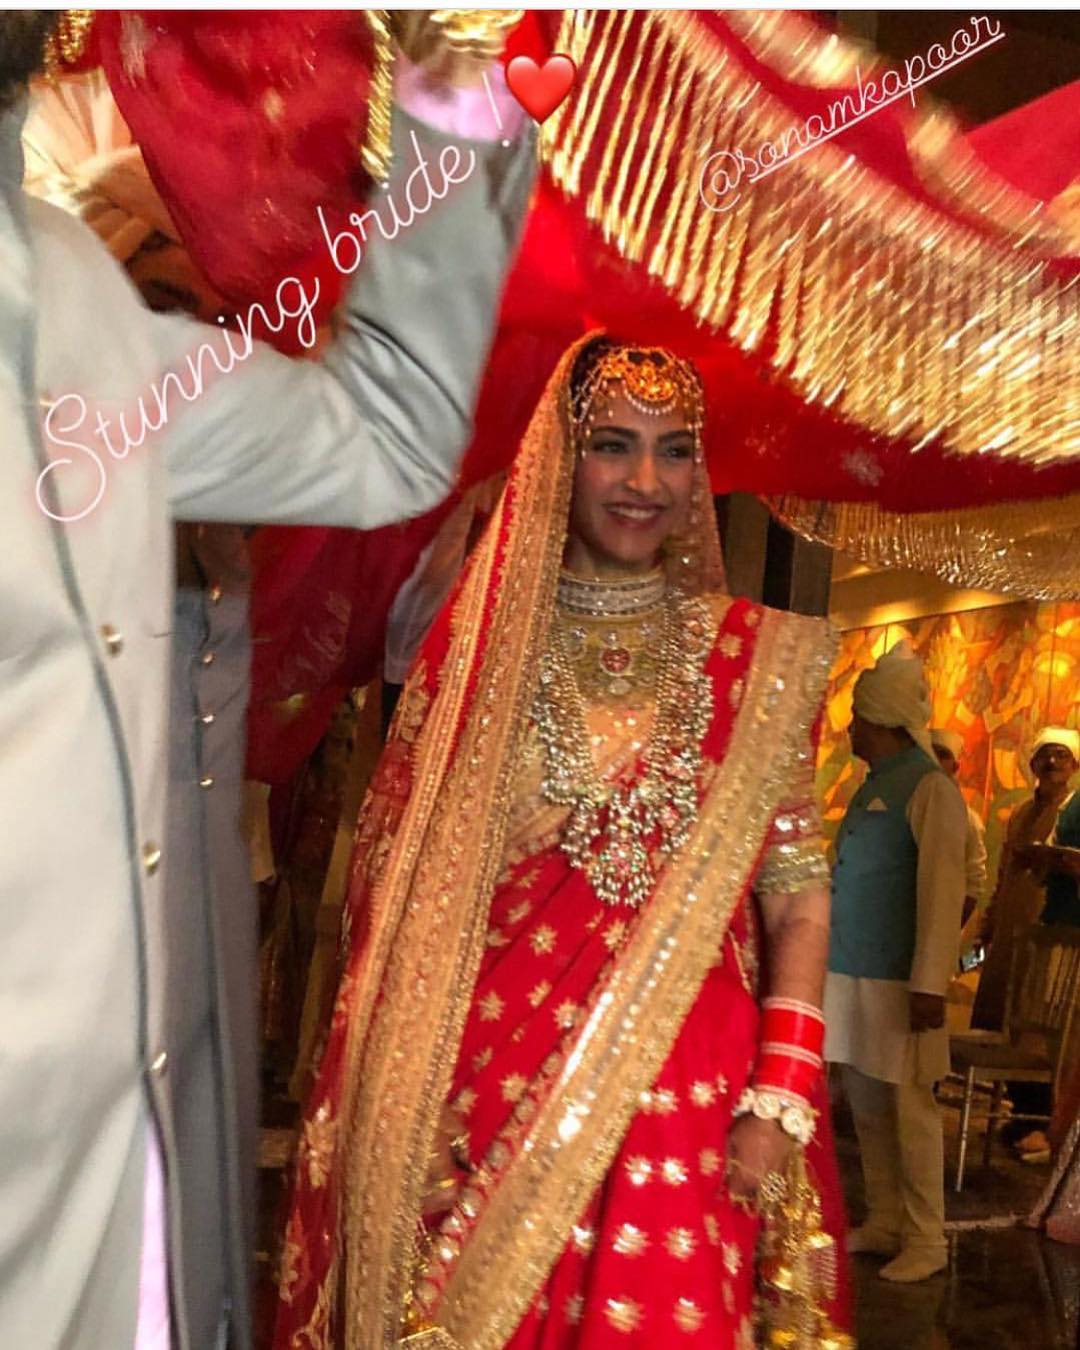 19-2 Sonam Kapoor Wedding Pics - Engagement and Complete Wedding Pictures